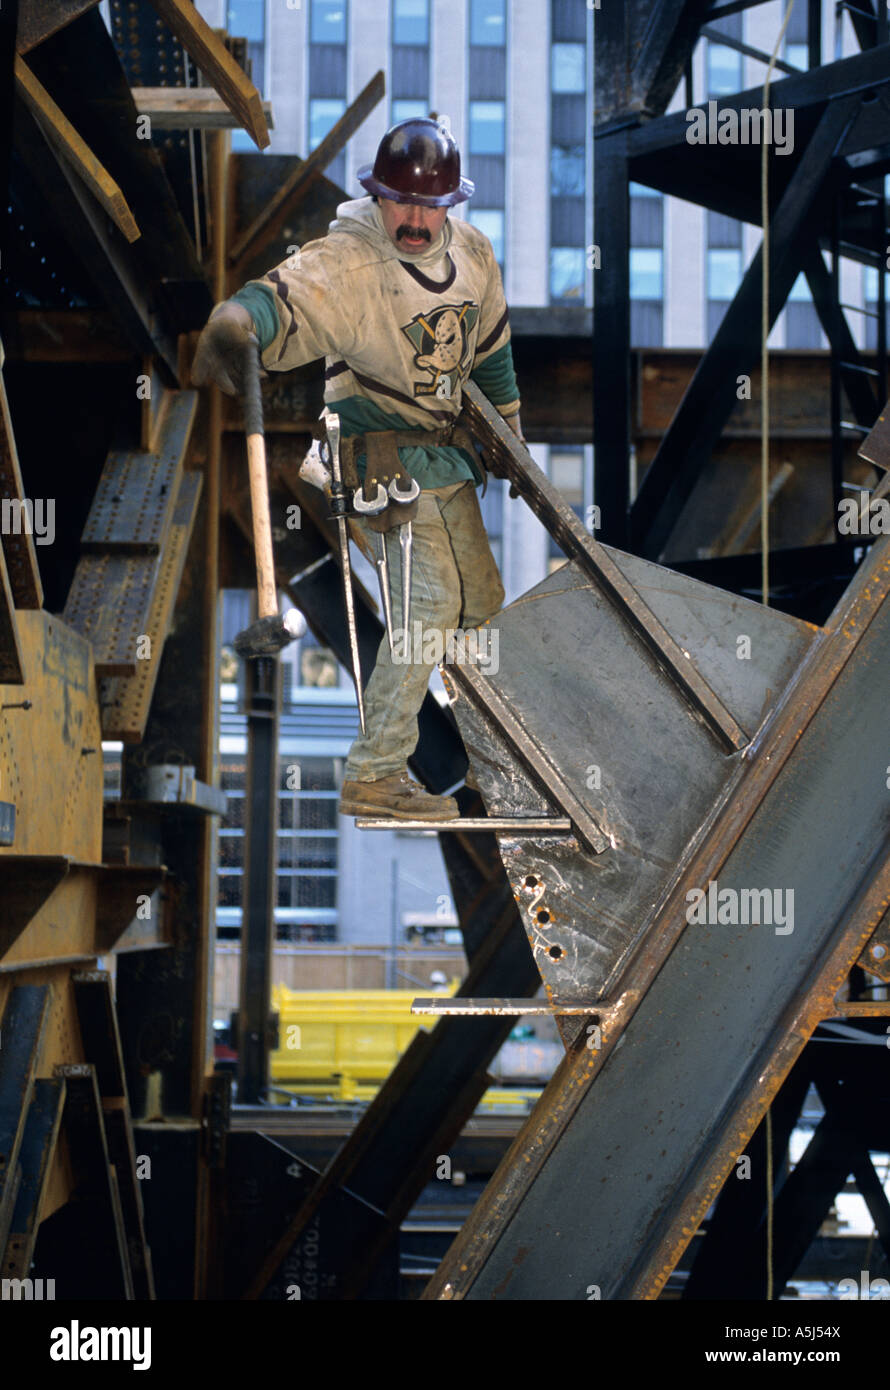 Mohawk indian iron worker catches a sledge hammer to persuade some